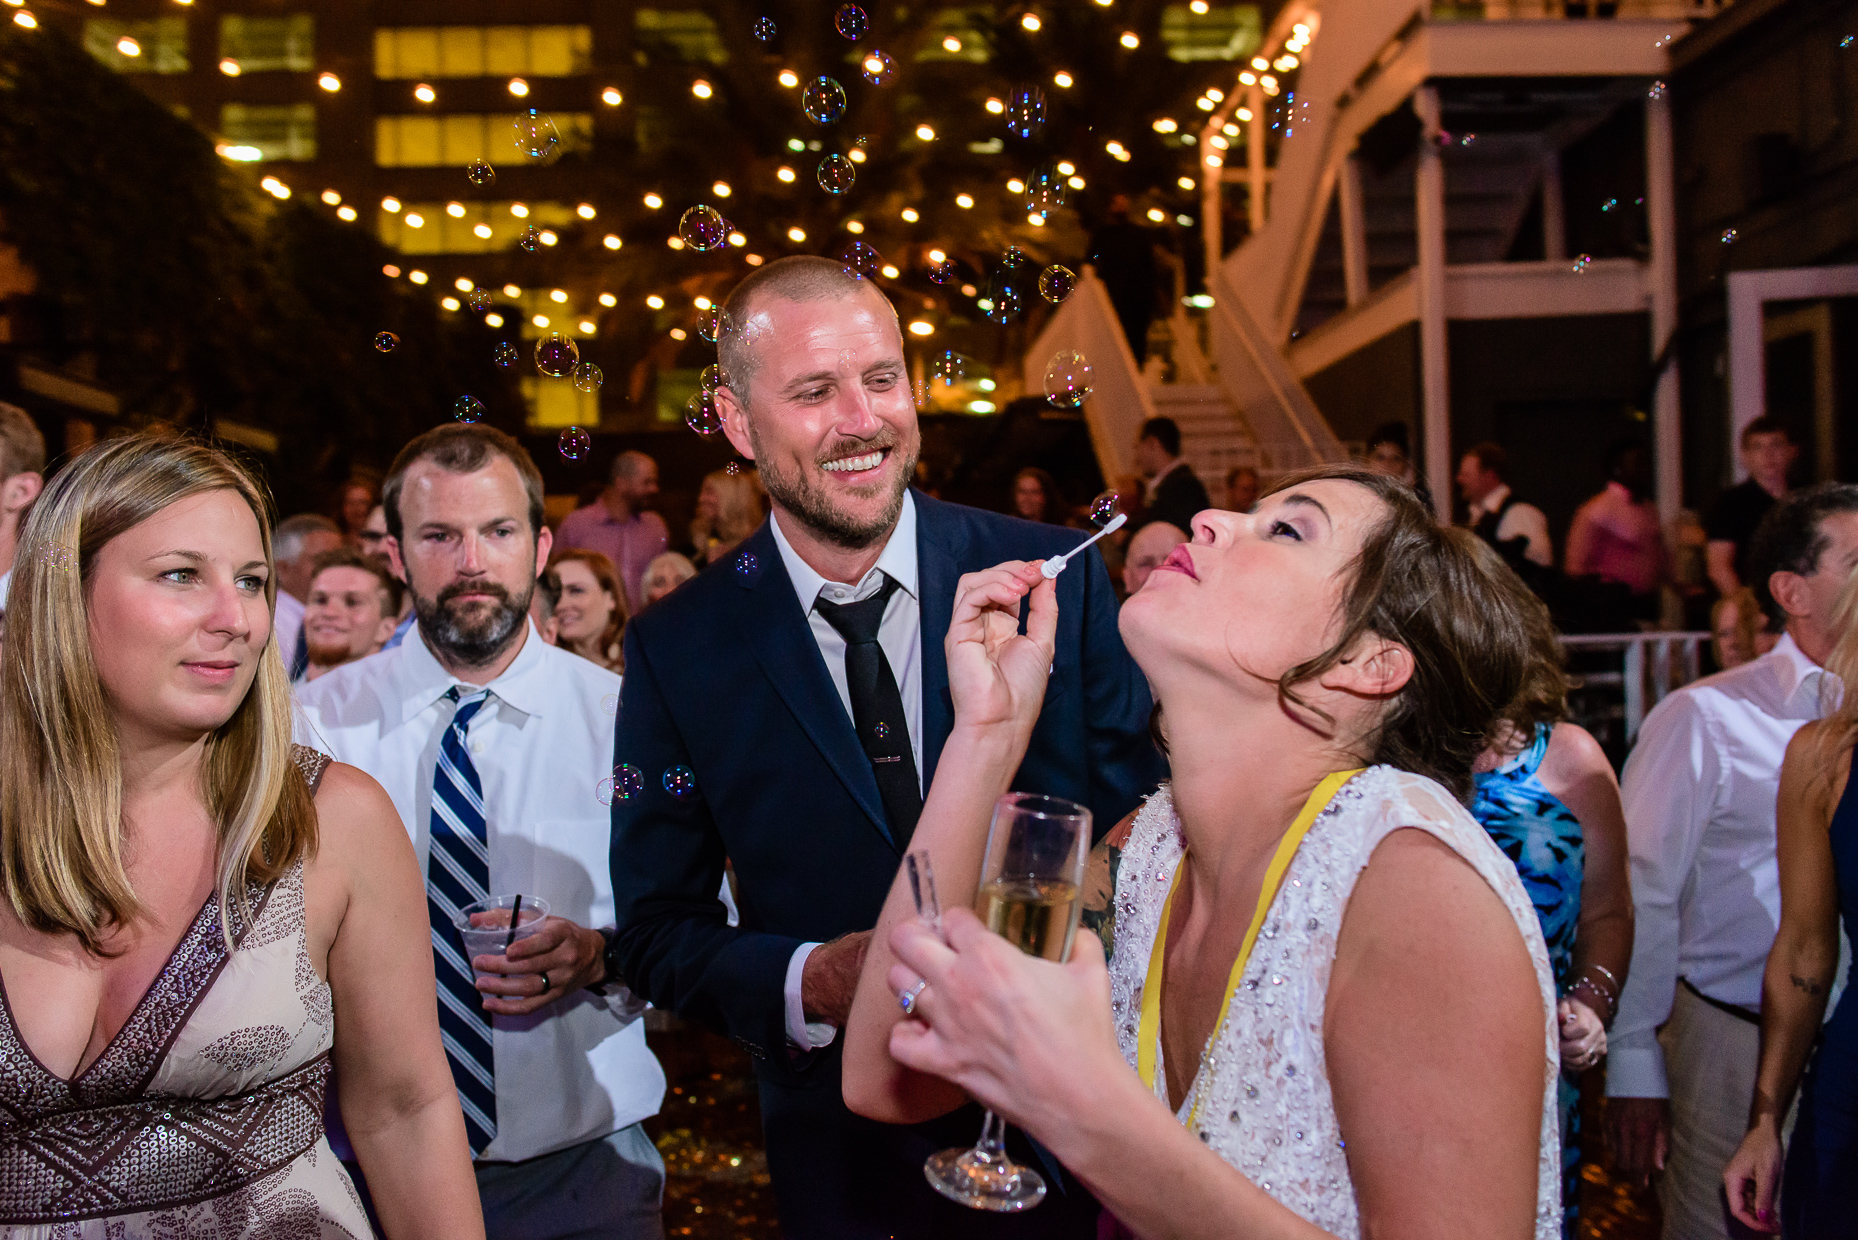 bubbles-austin-wedding-photographer-texas-belmont-downtown